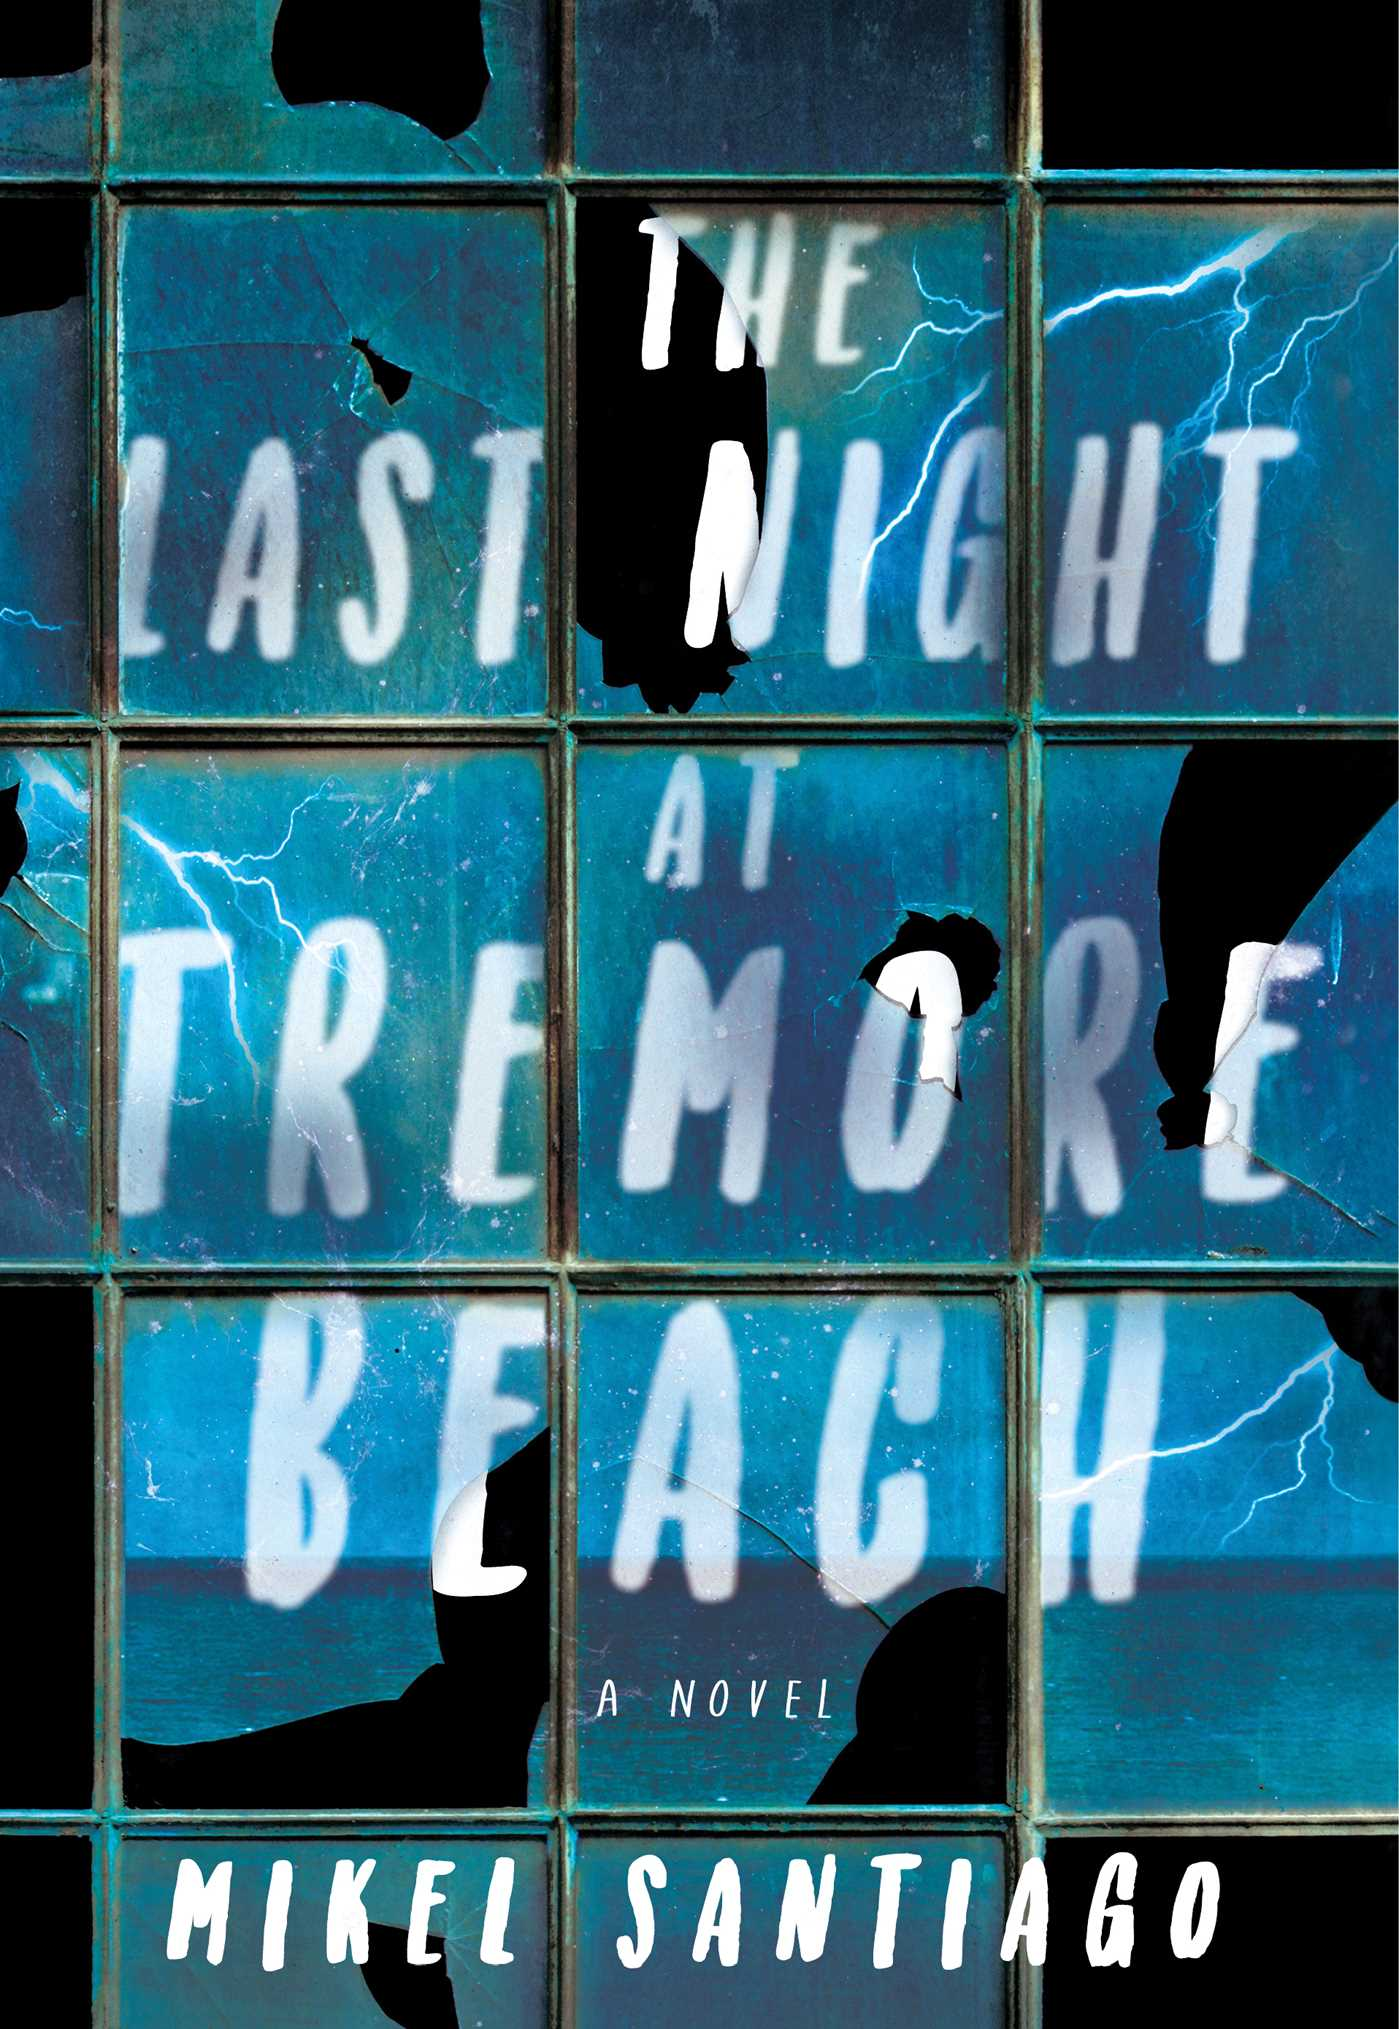 The last night at tremore beach 9781501102240 hr